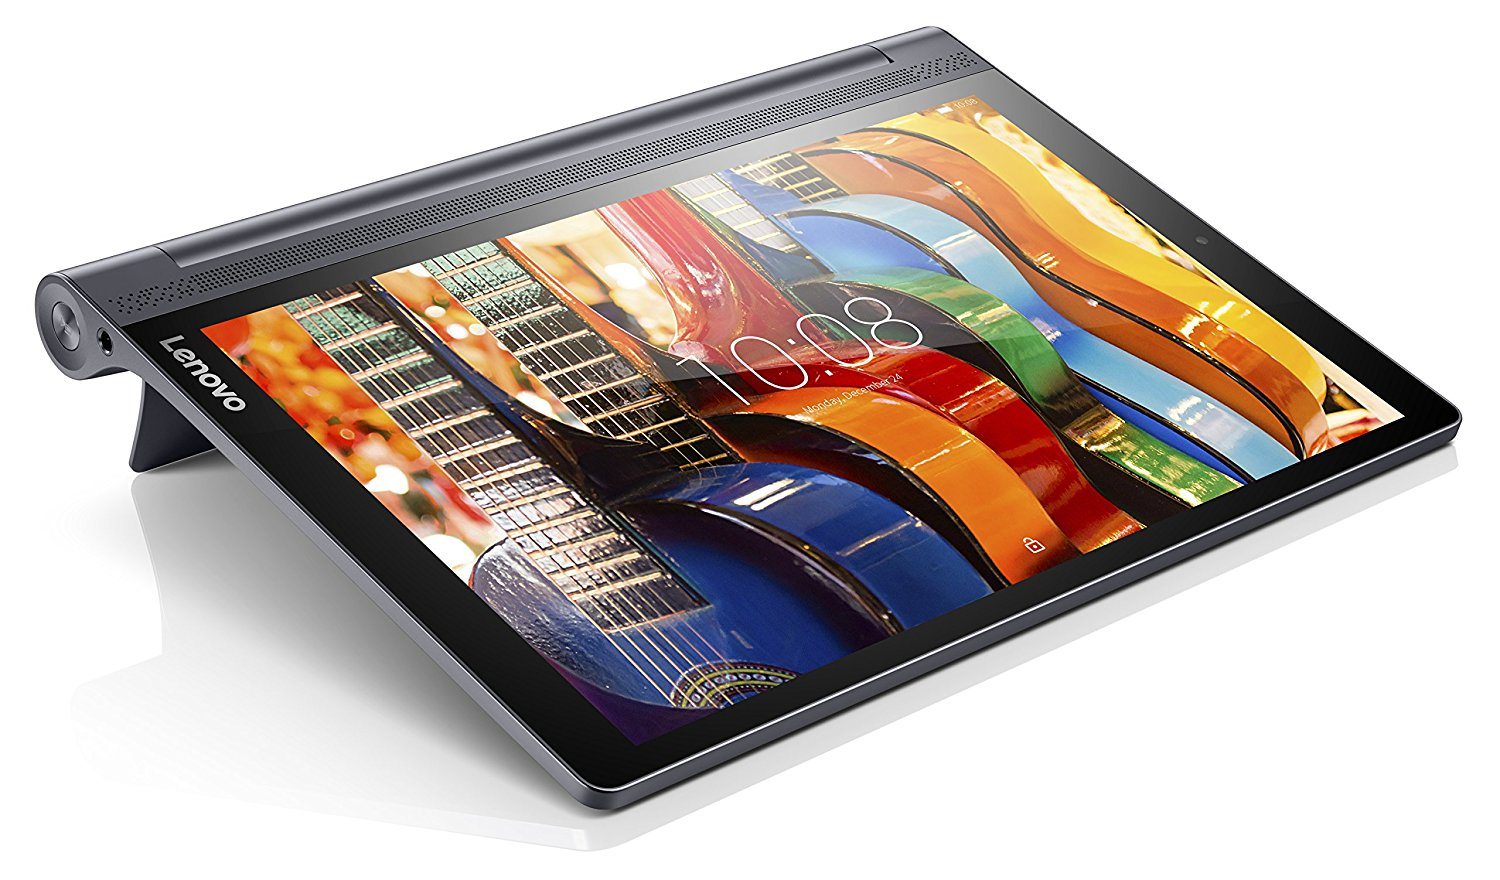 note taking tablet for college lenovo yoga book